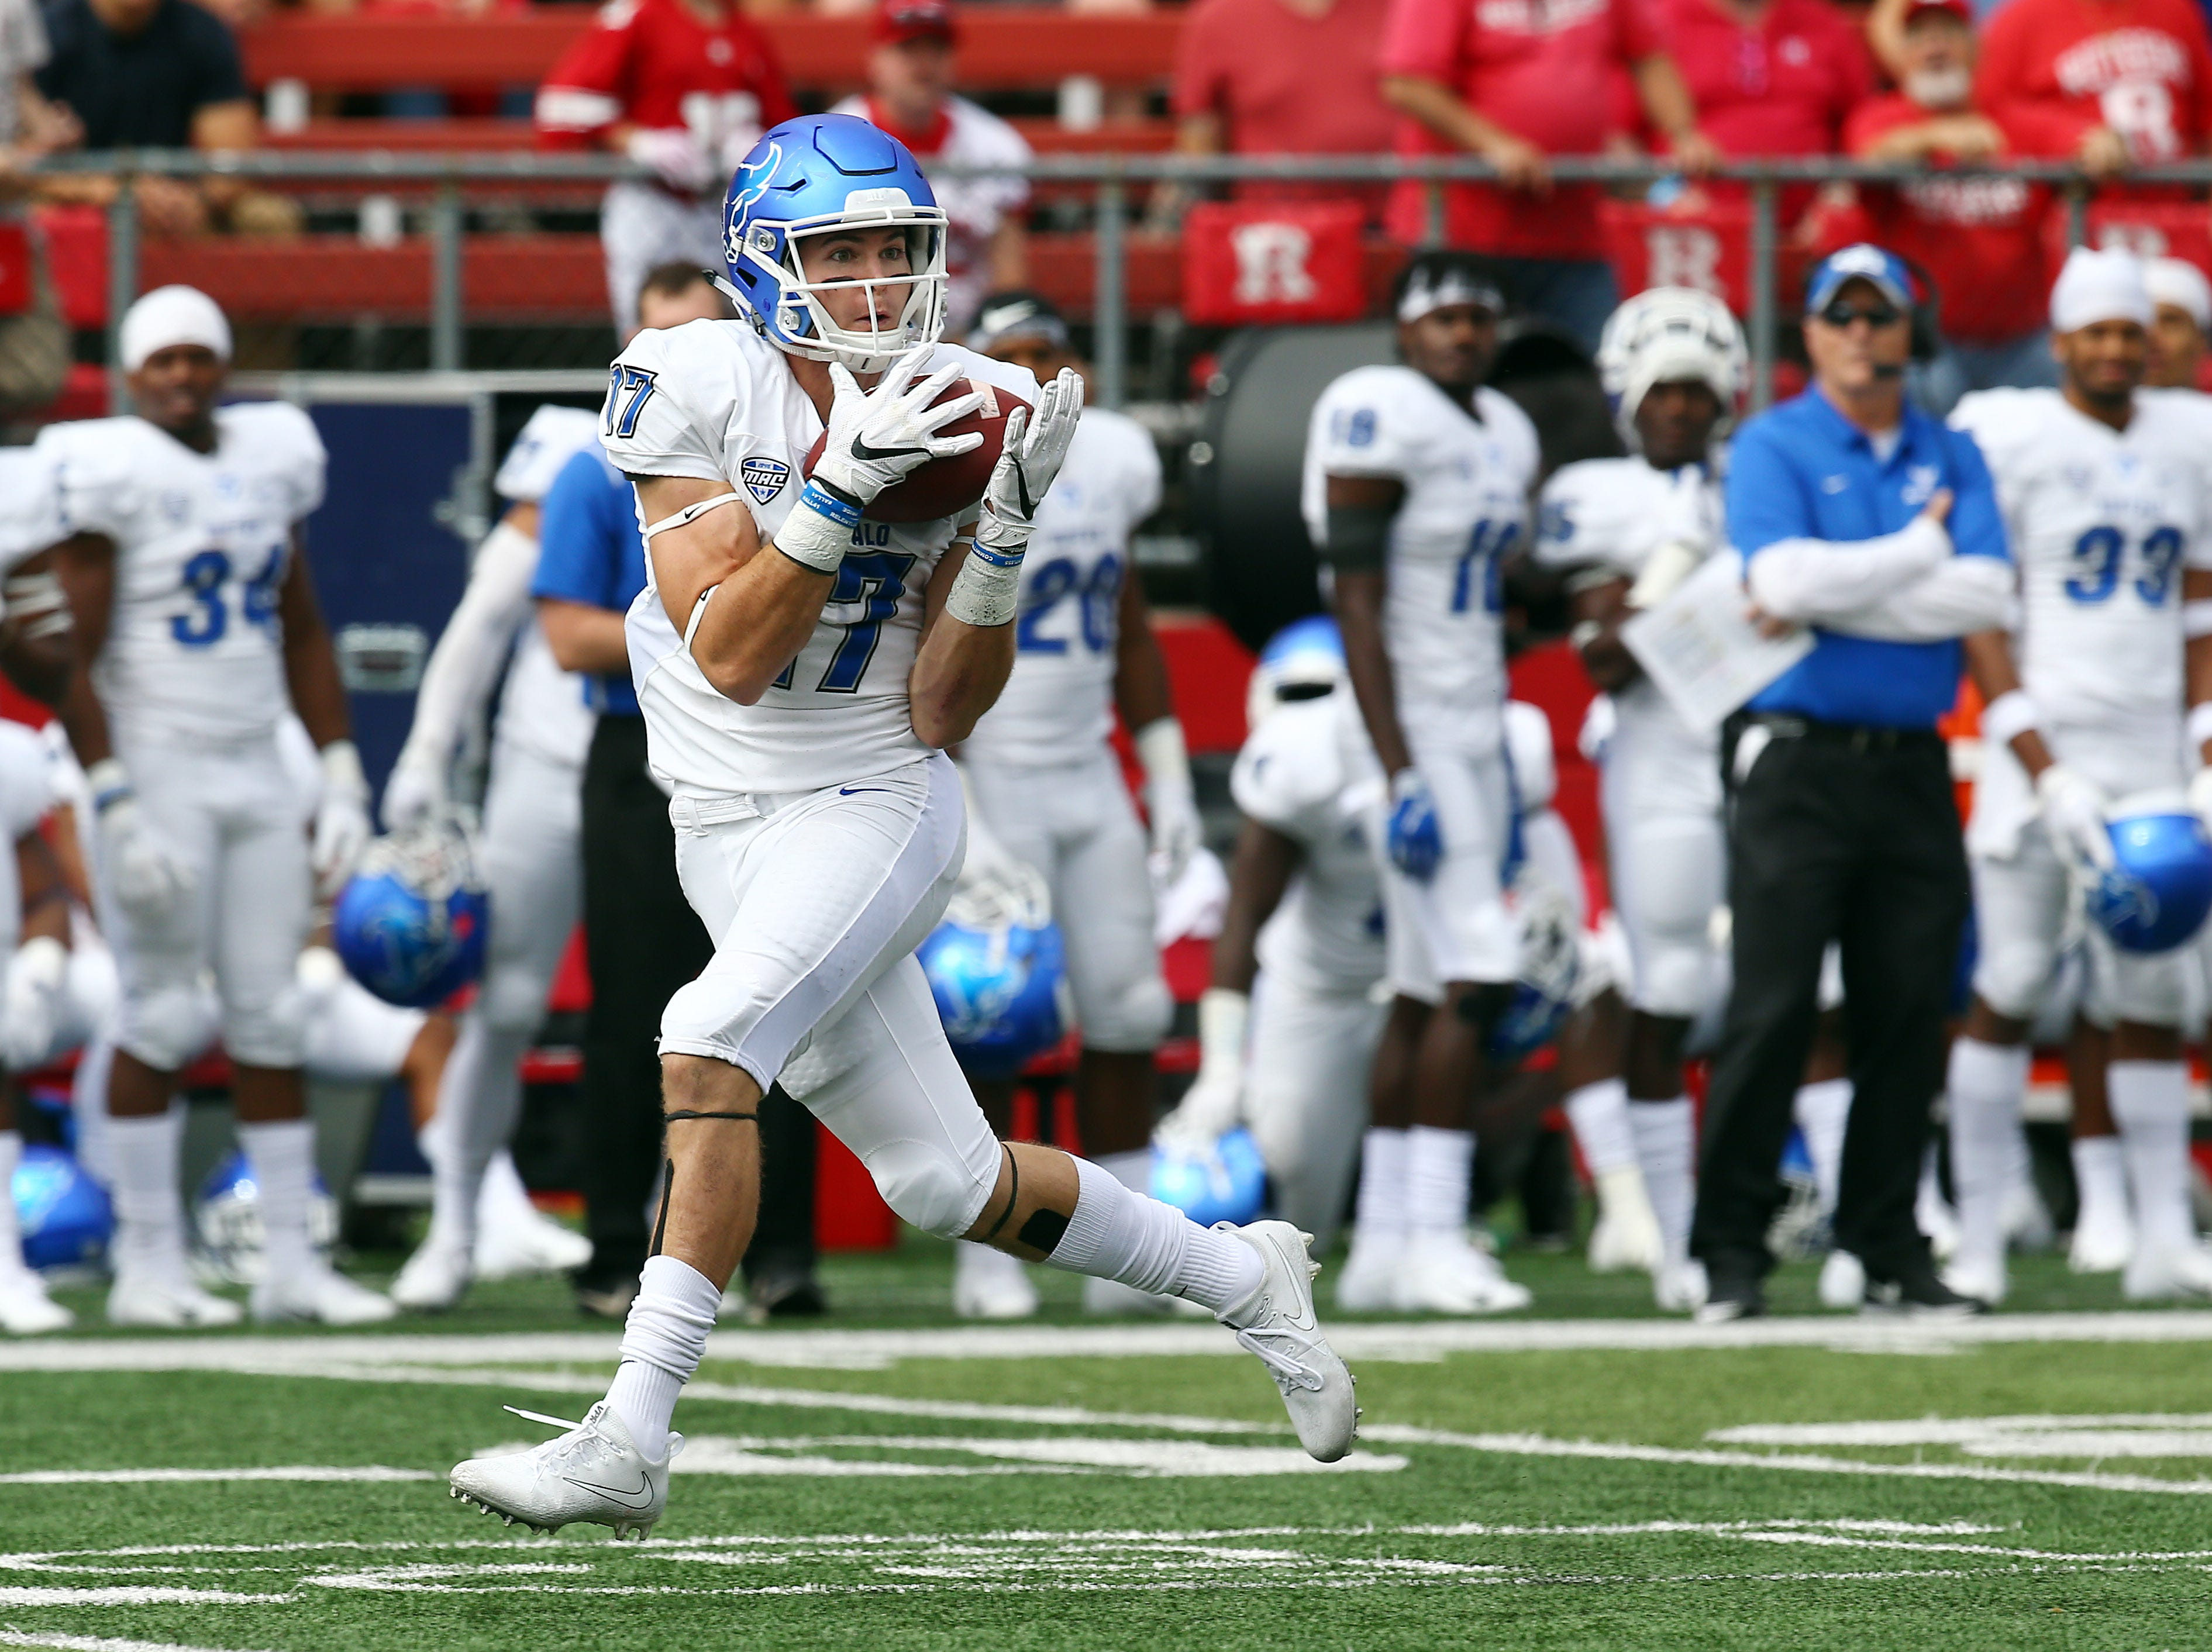 Buffalo Bulls receiver Charlie Jones pulls in a pass on his way to a first half touchdown at HighPoint.com Stadium in Piscataway. September 22, 2018, Piscataway, NJ